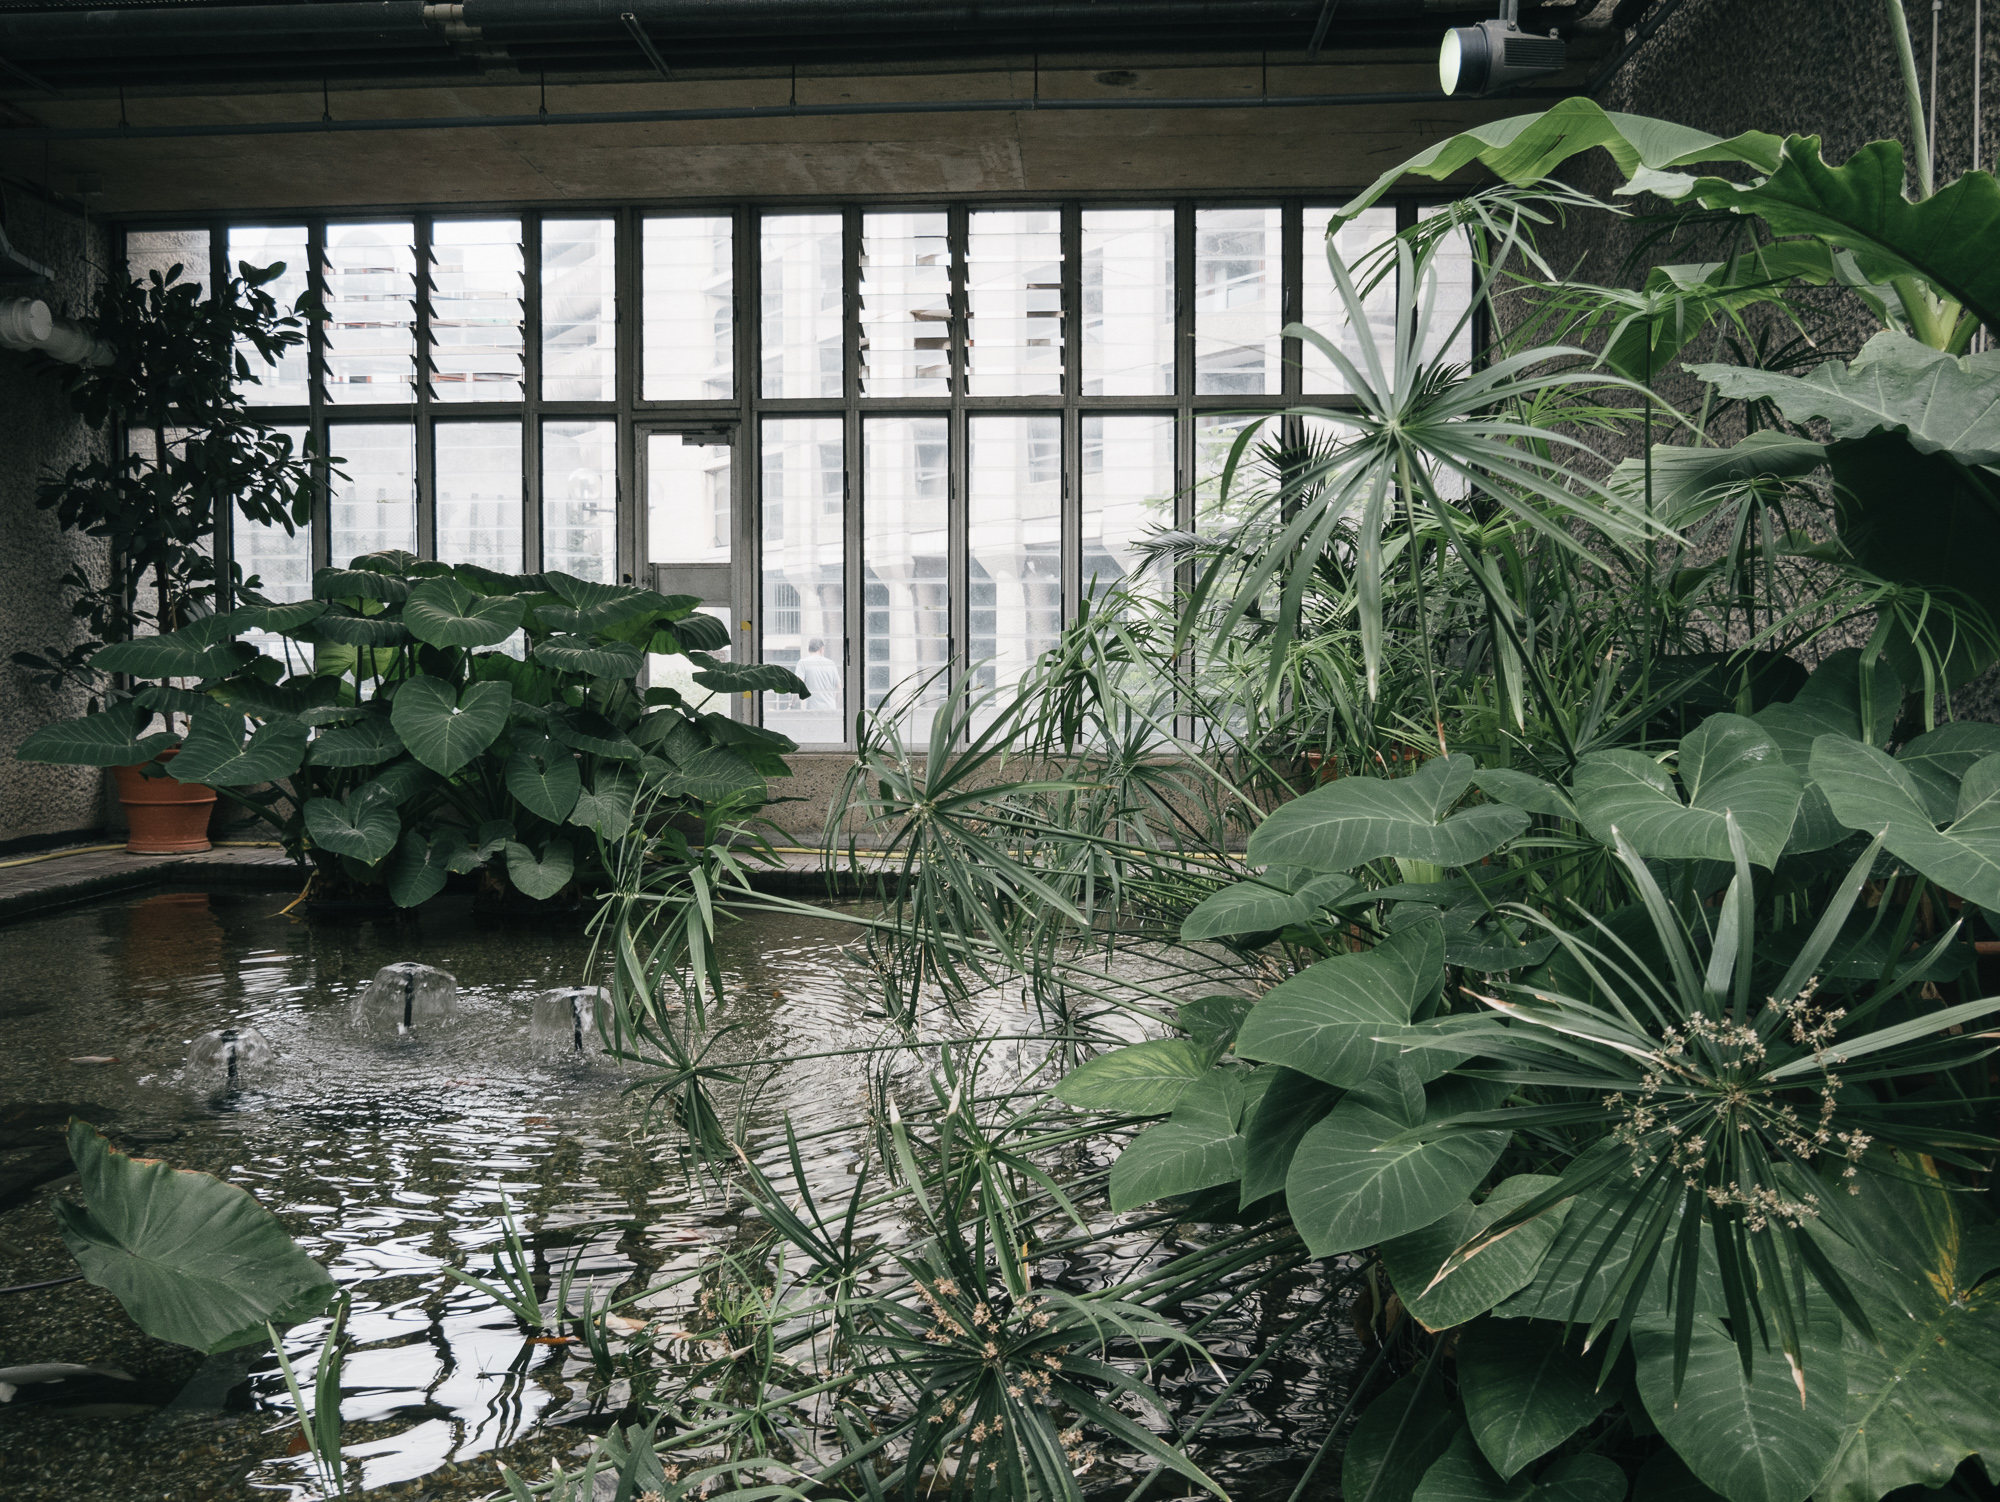 Conservatory is home for over 2,000 species of tropical plants and trees